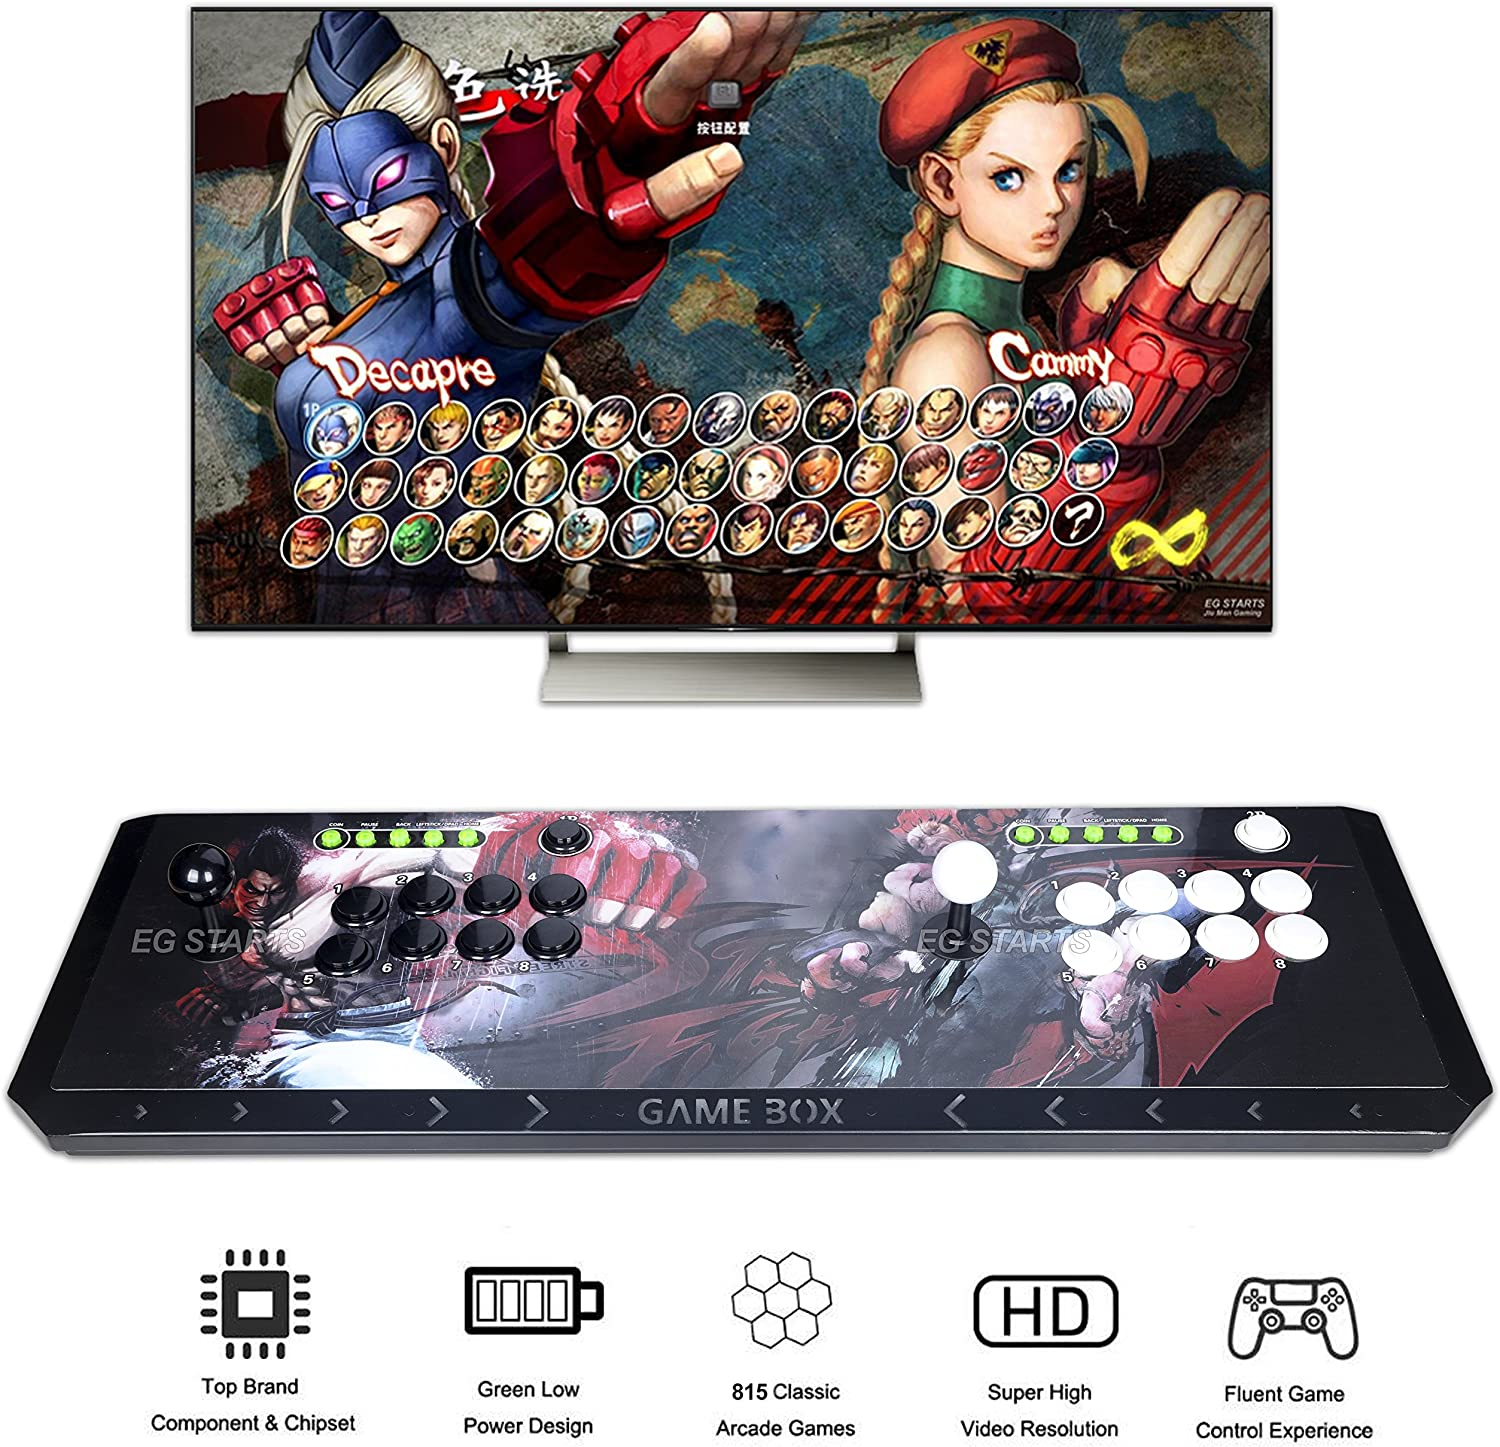 EG STARTS Arcade Video Game Console 815 in 1 Pandora's Box 4S+ Plus Slim Metal LED Box Consoles Support HDMI VGA and USB Output Support TV Set, Monitor, Projector, PC/Laptop In 815 Games